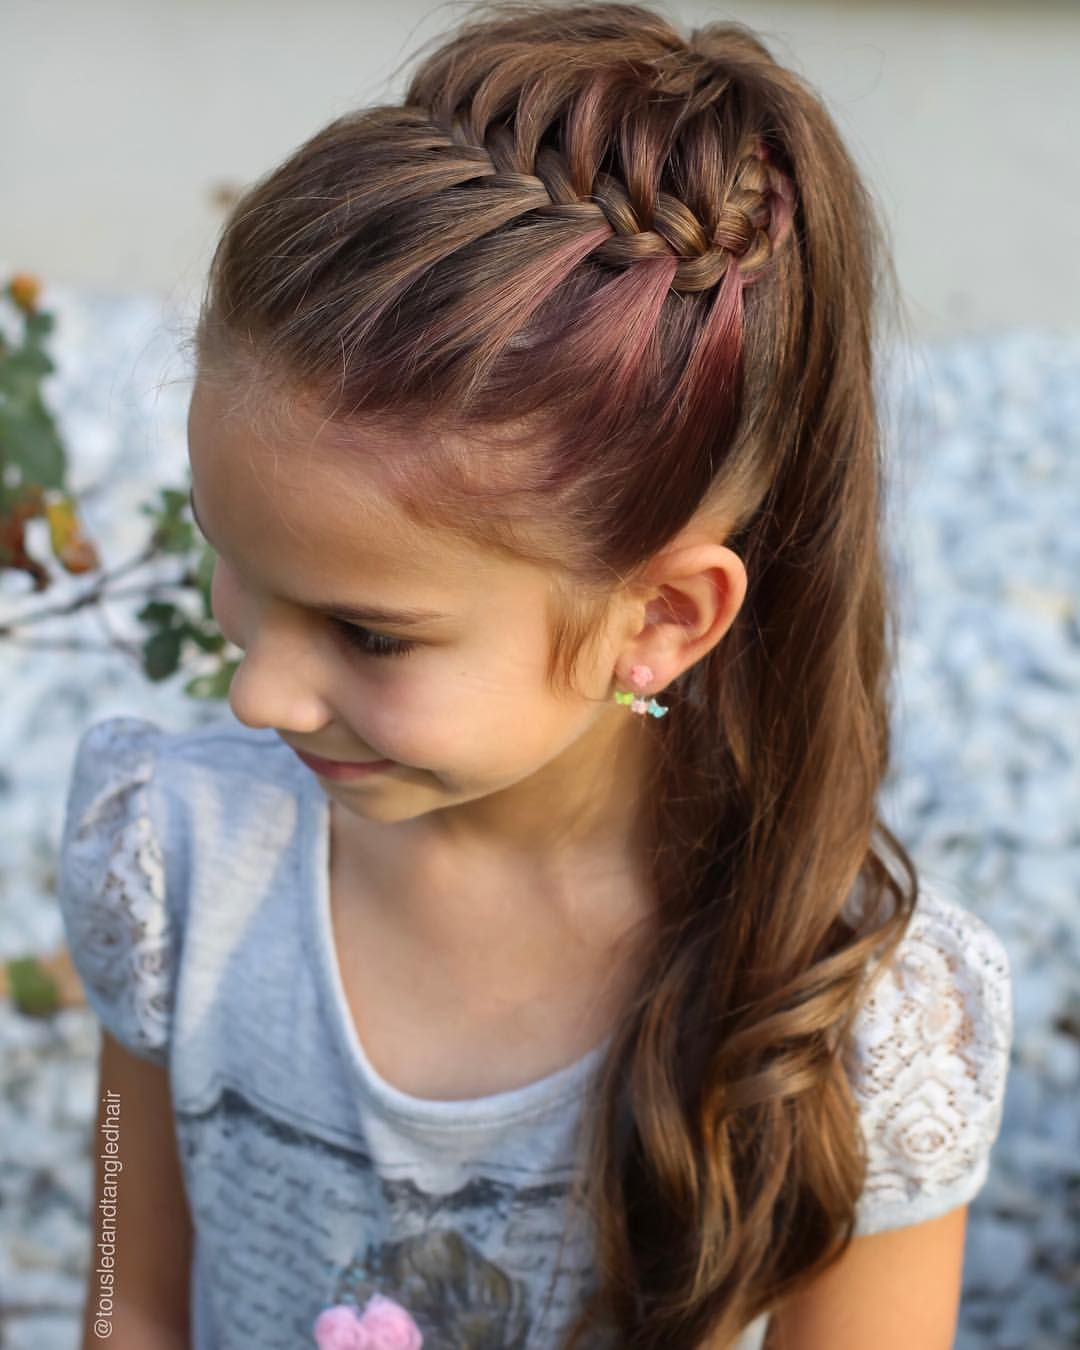 Princess Hairstyle Formal Hairstyles For Long Hair Princess Hairstyles Little Girl Hairstyles